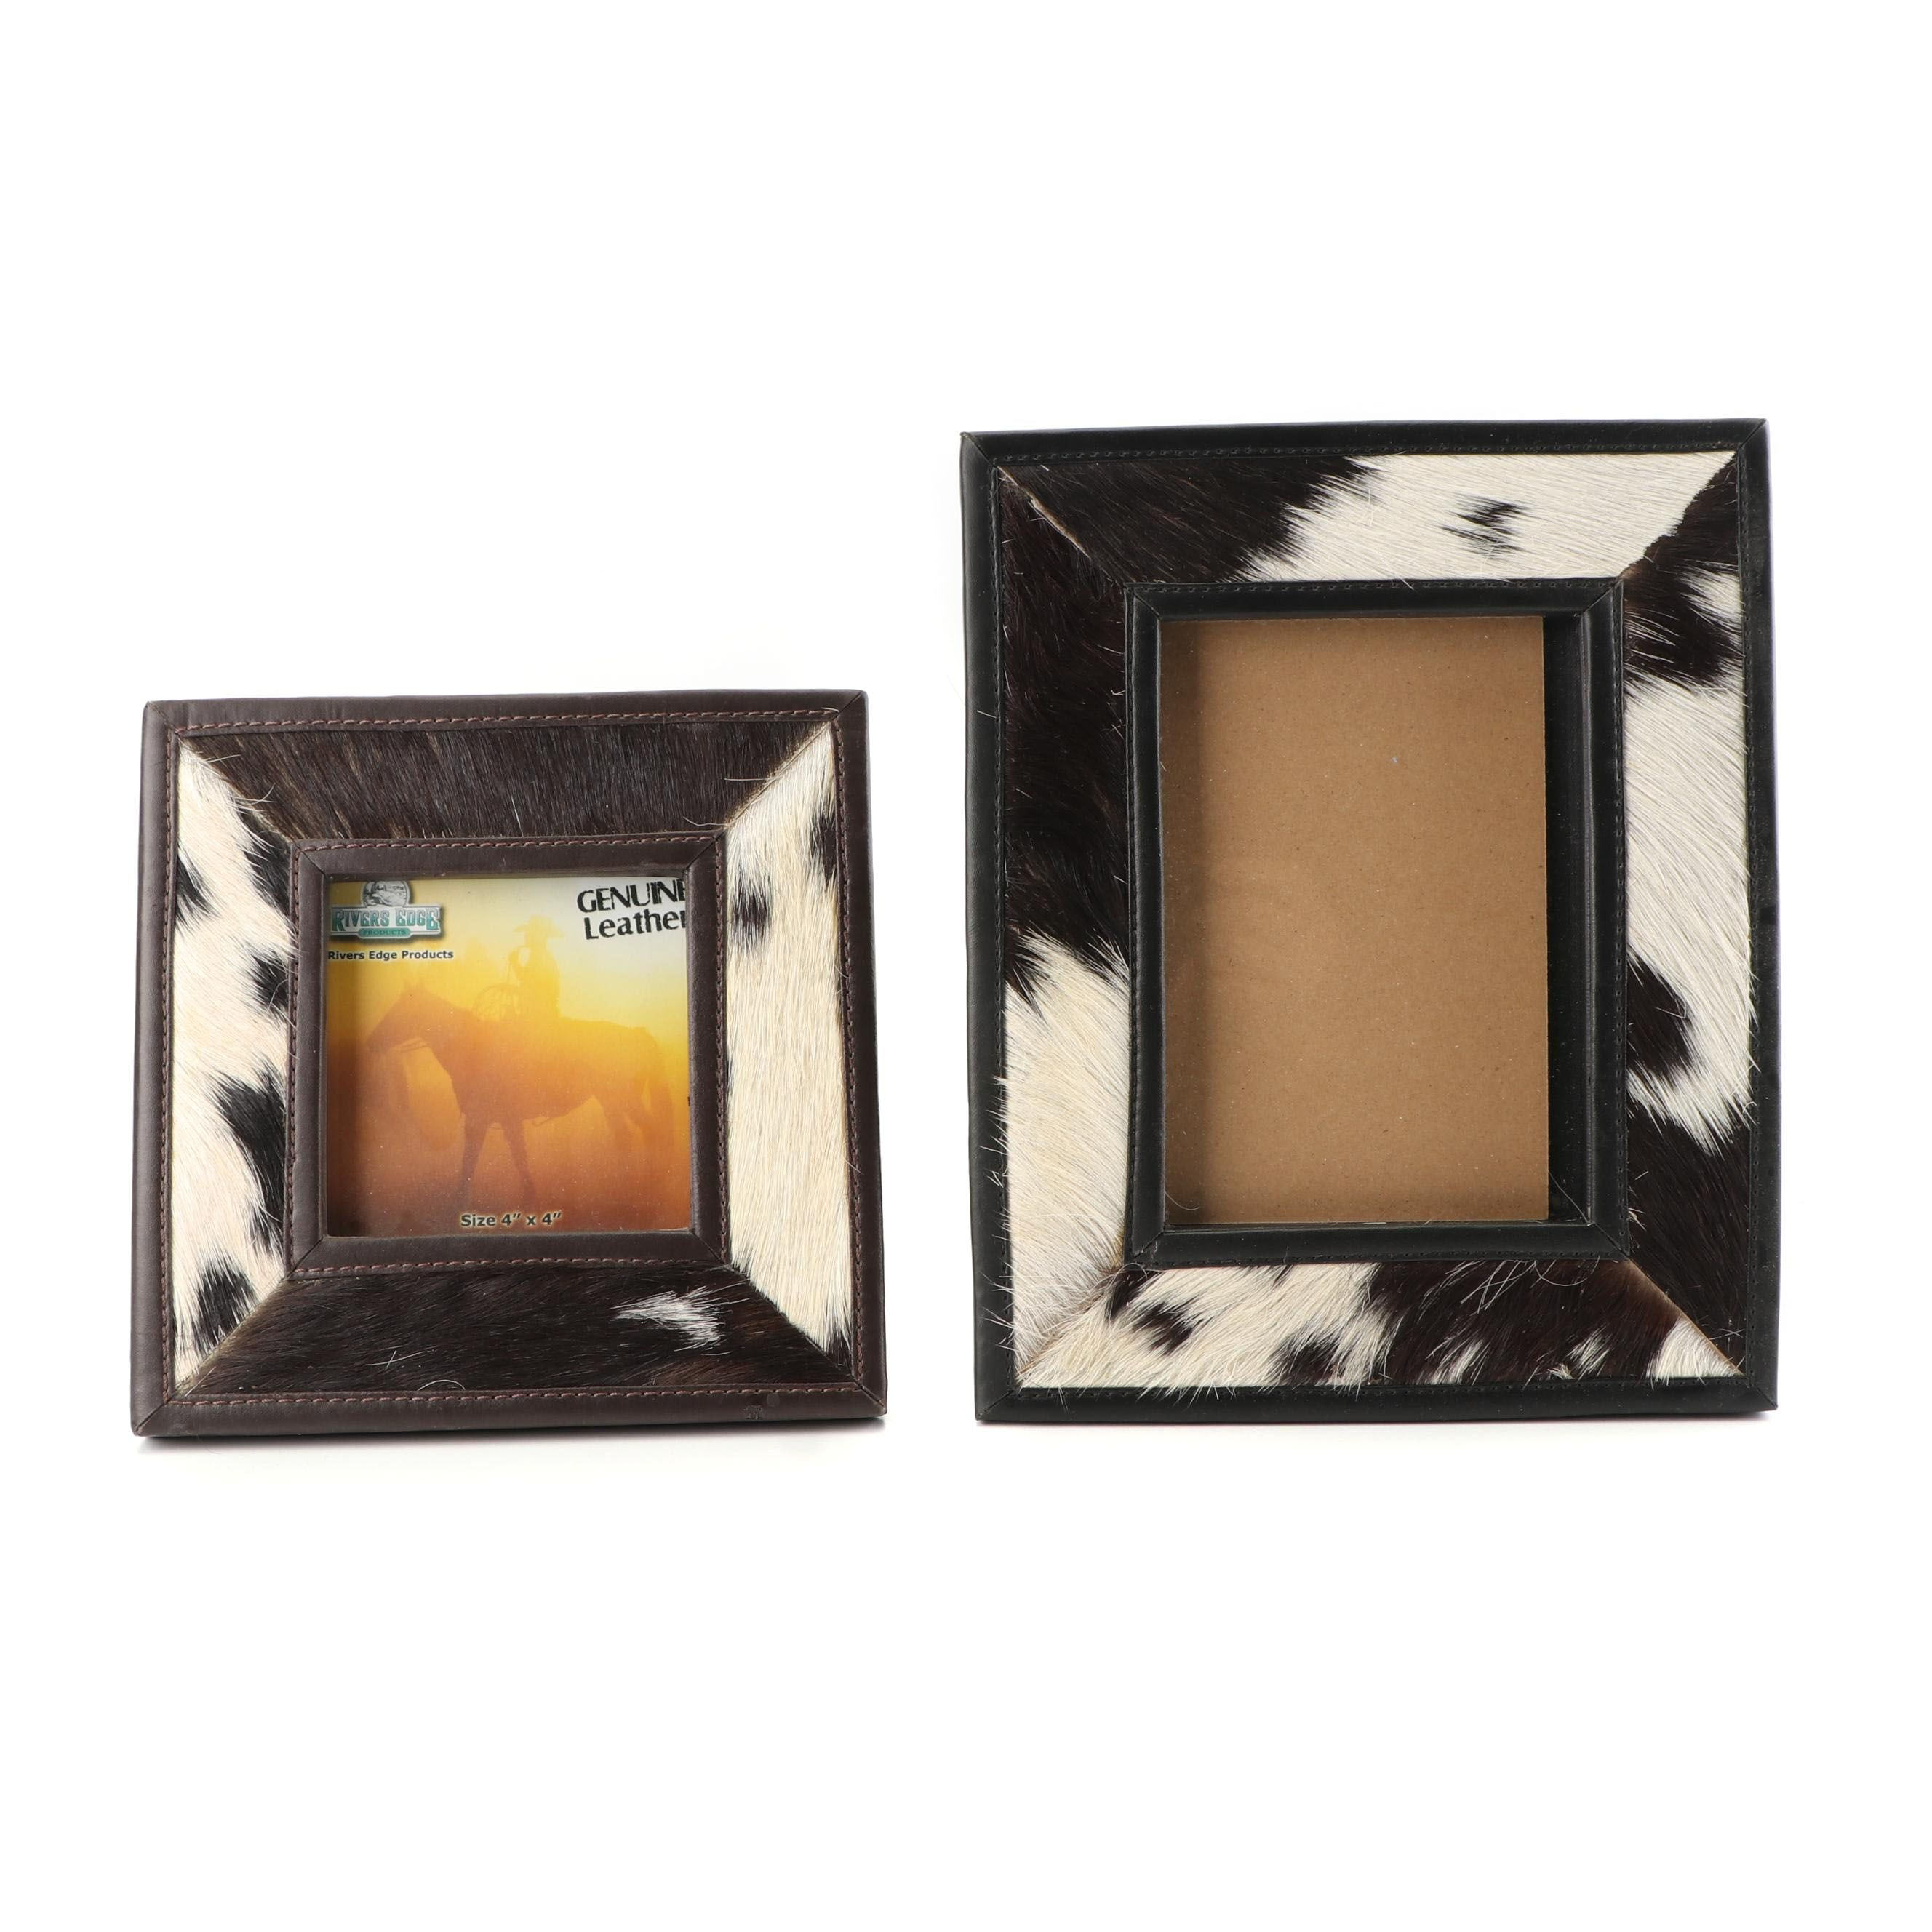 Leather and Cowhide Table Top Picture Frames